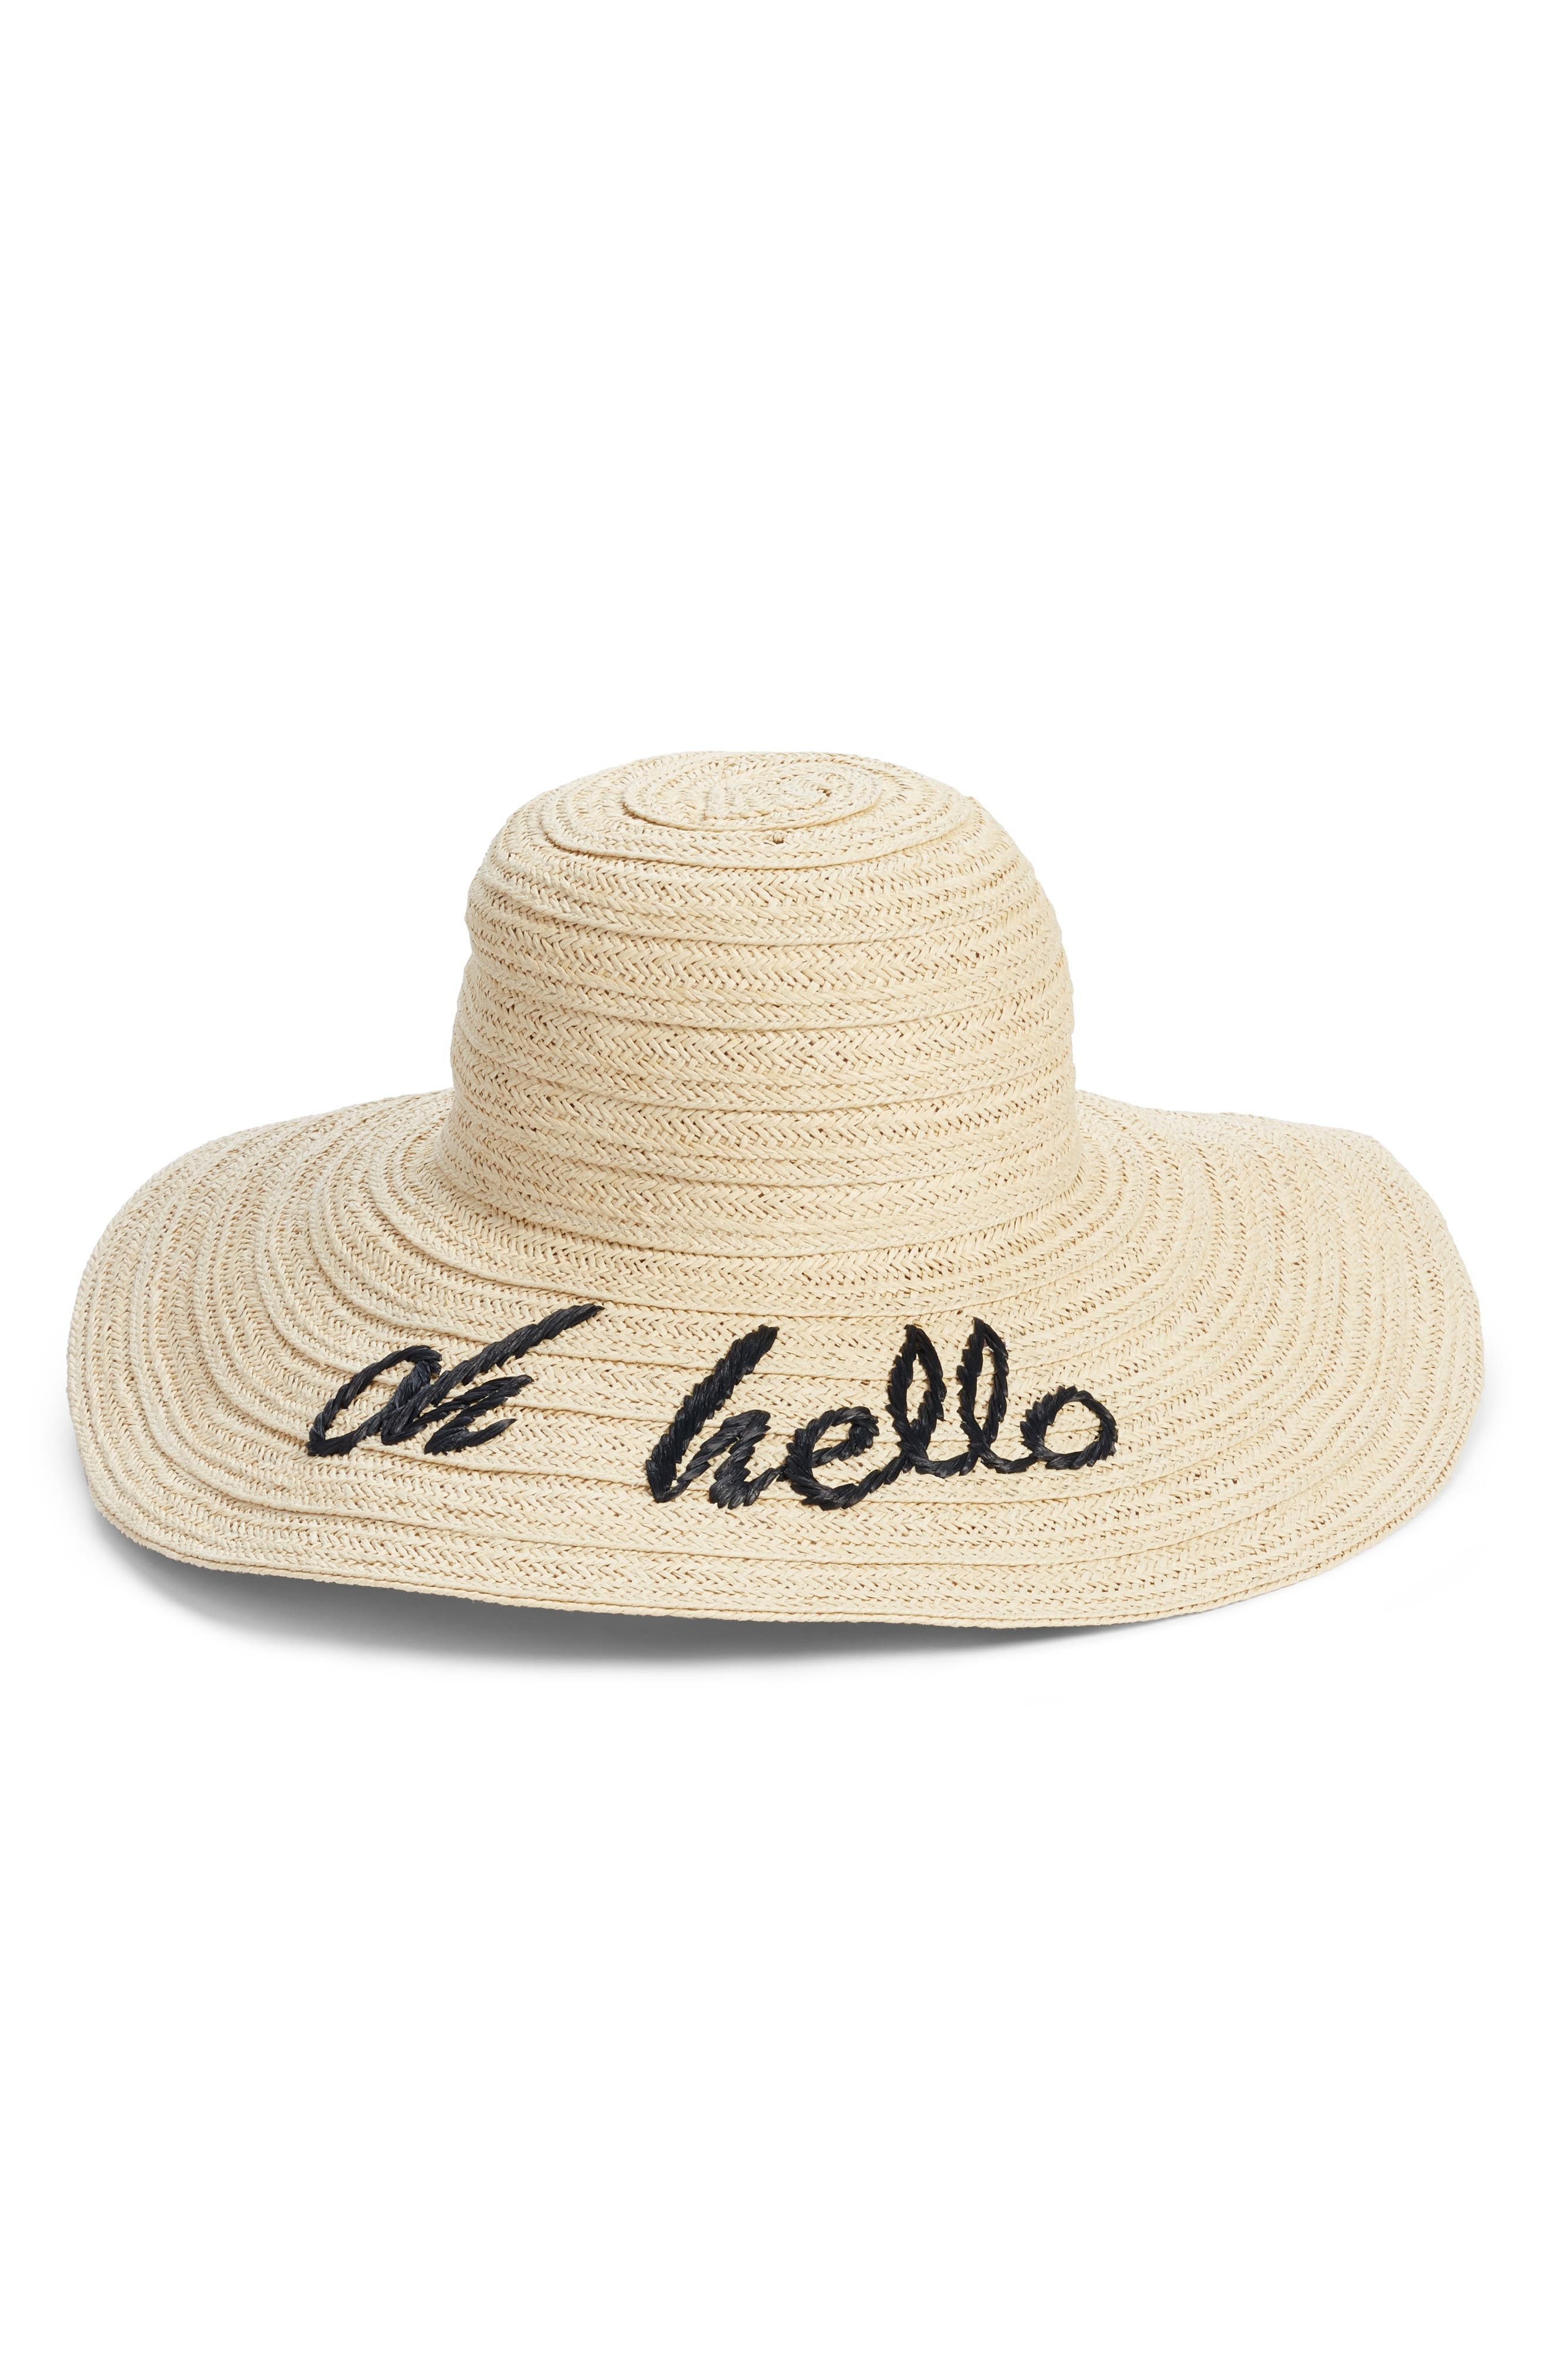 Wordplay Floppy Straw Sun Hat,                             Main thumbnail 2, color,